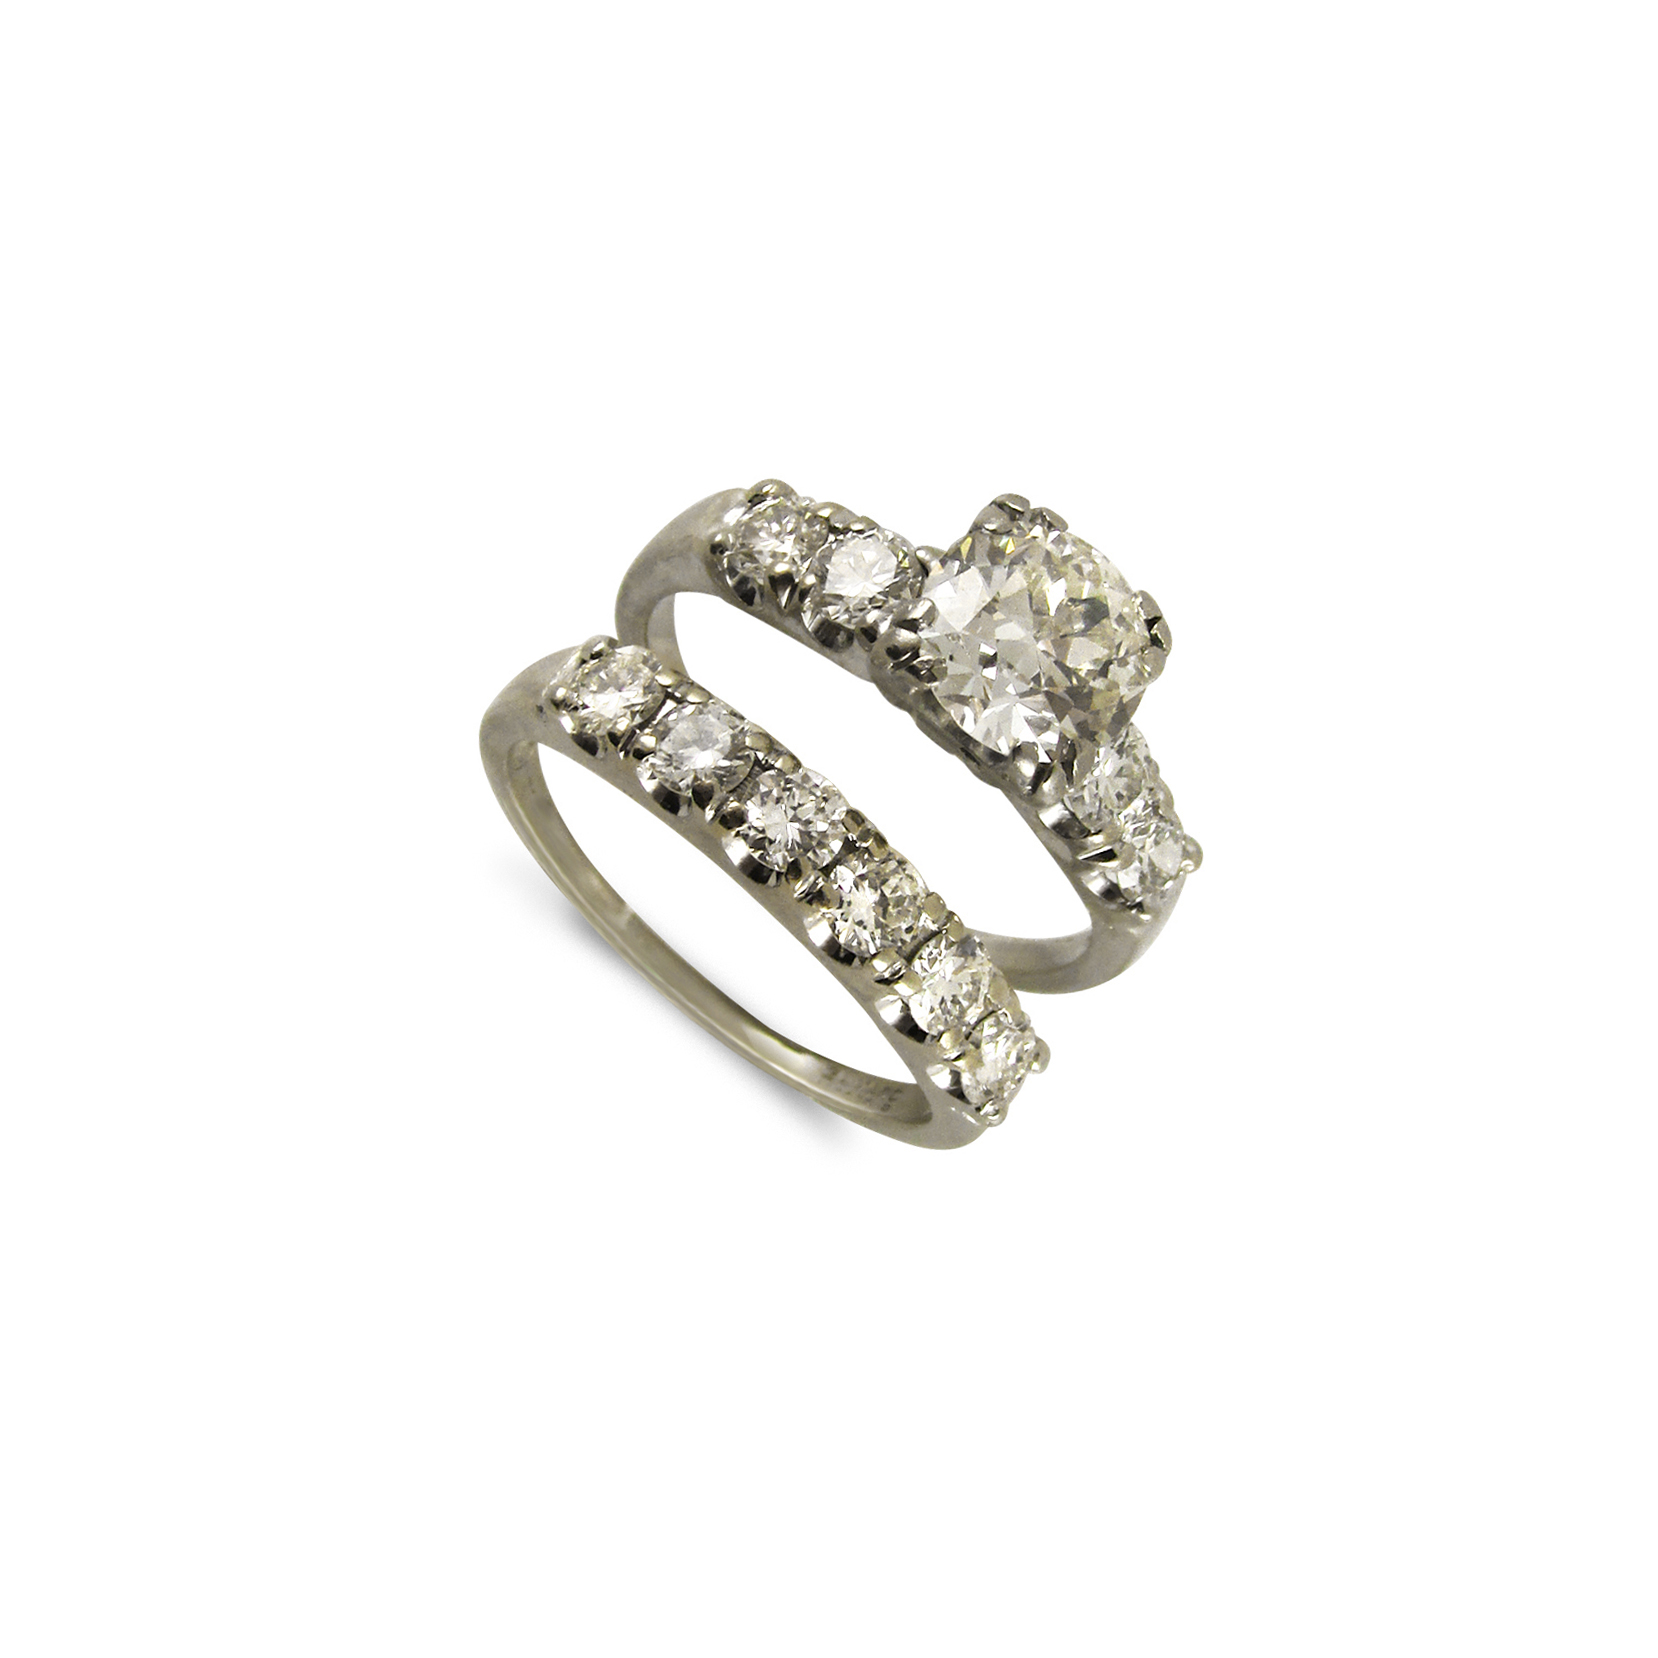 White Gold Diamond Ring with Matching Band